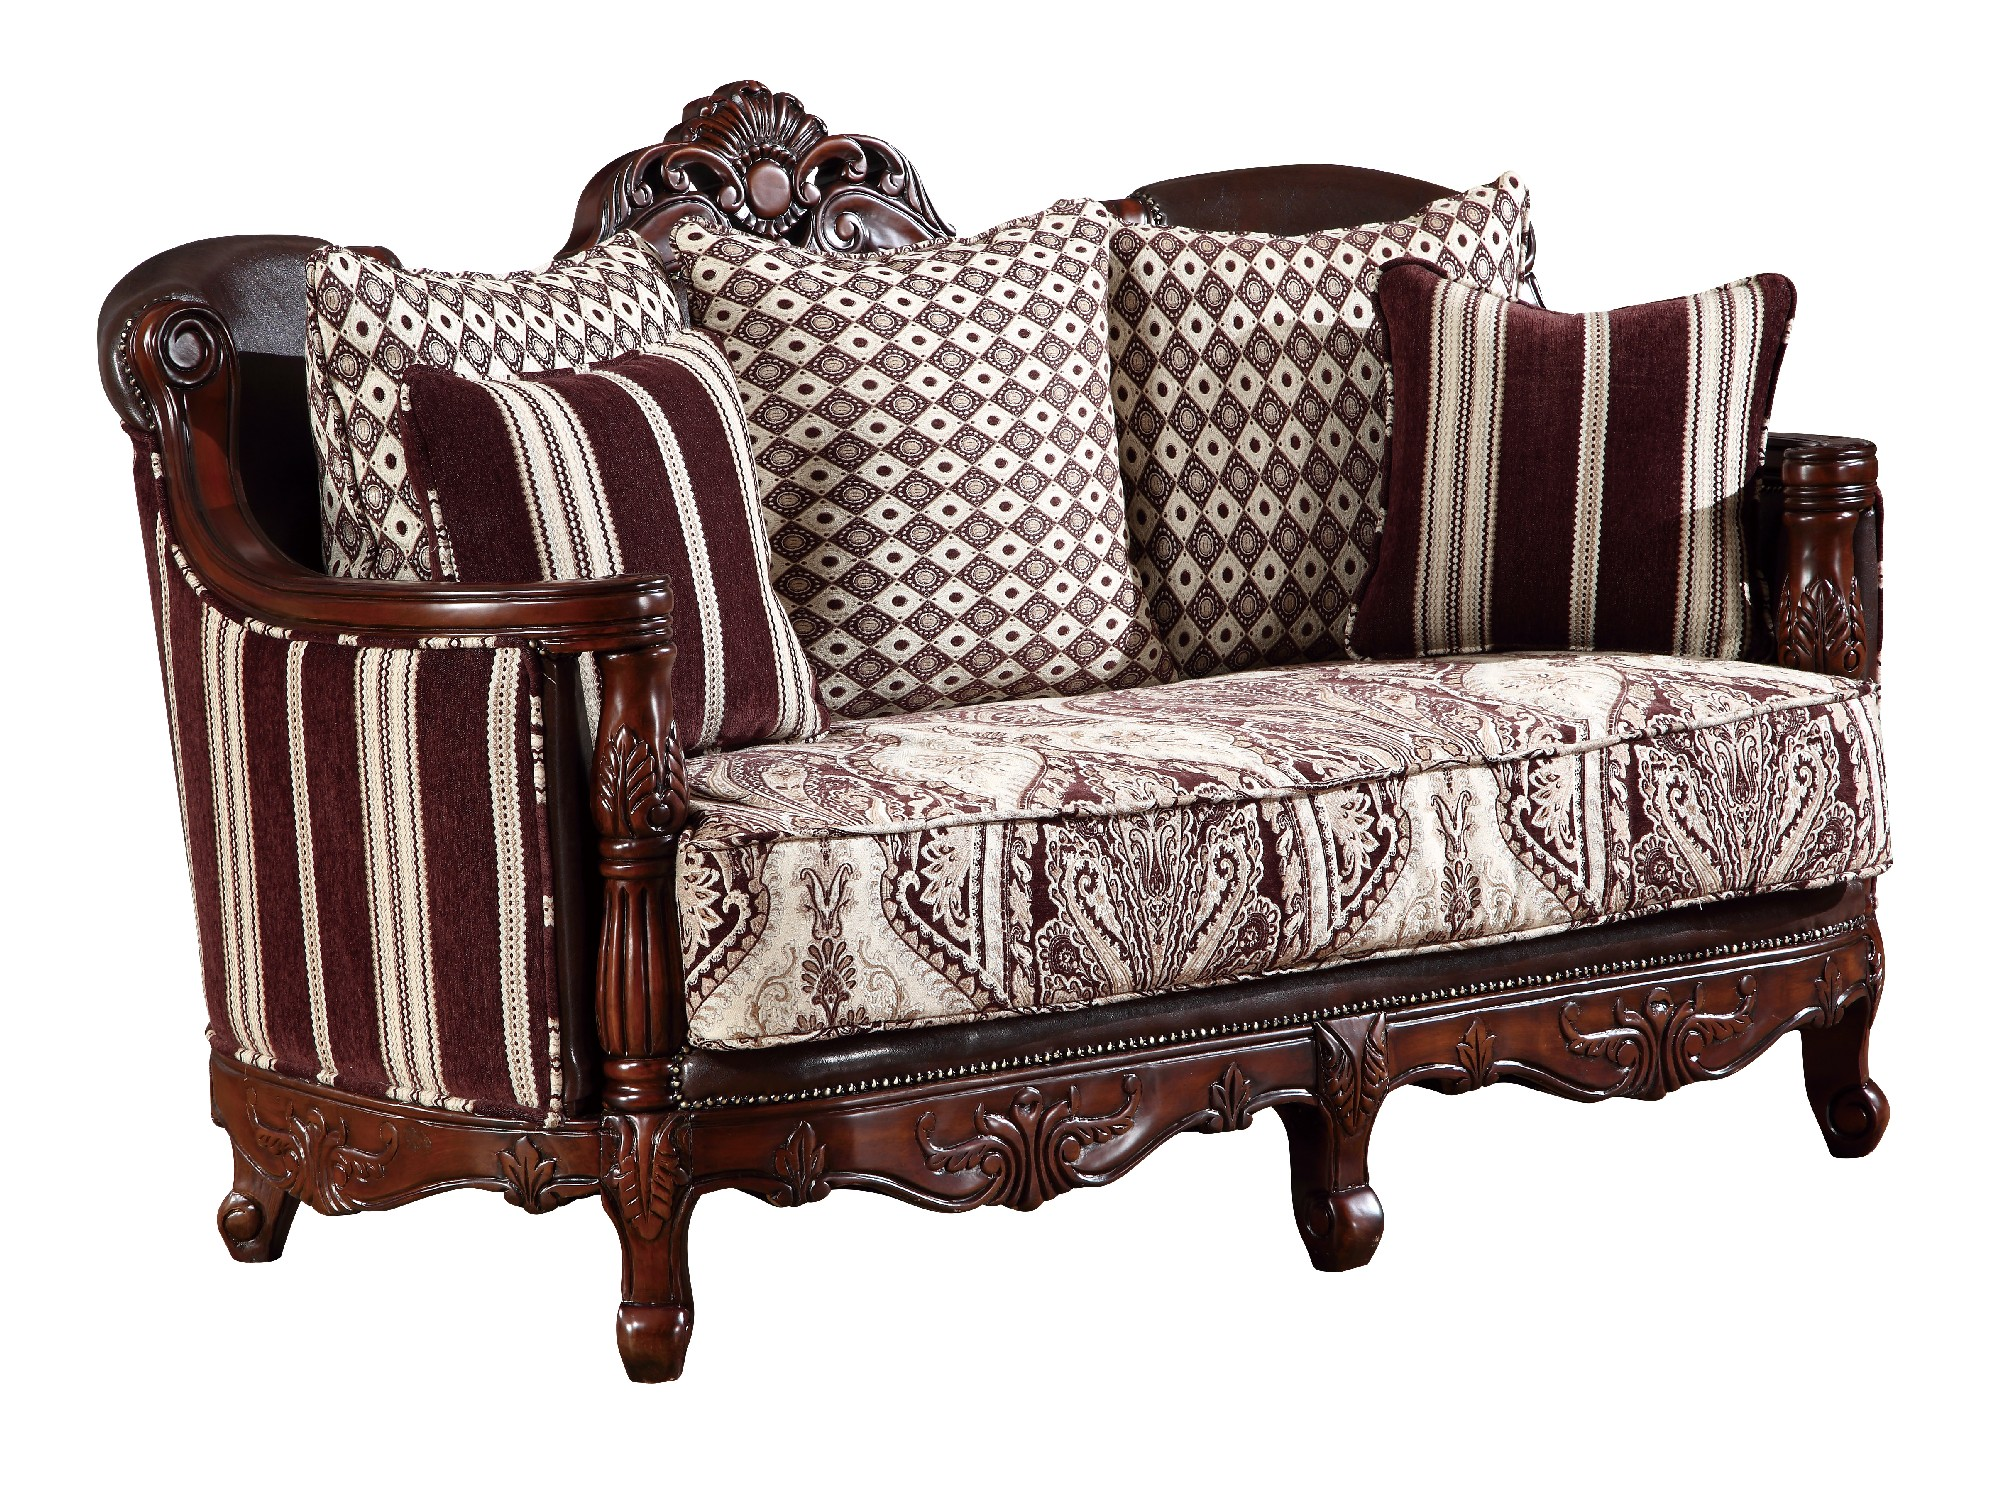 Marvelous photograph of U2394 Brown Fabric Solid Wood Loveseat by Global Furniture with #341A18 color and 2000x1487 pixels